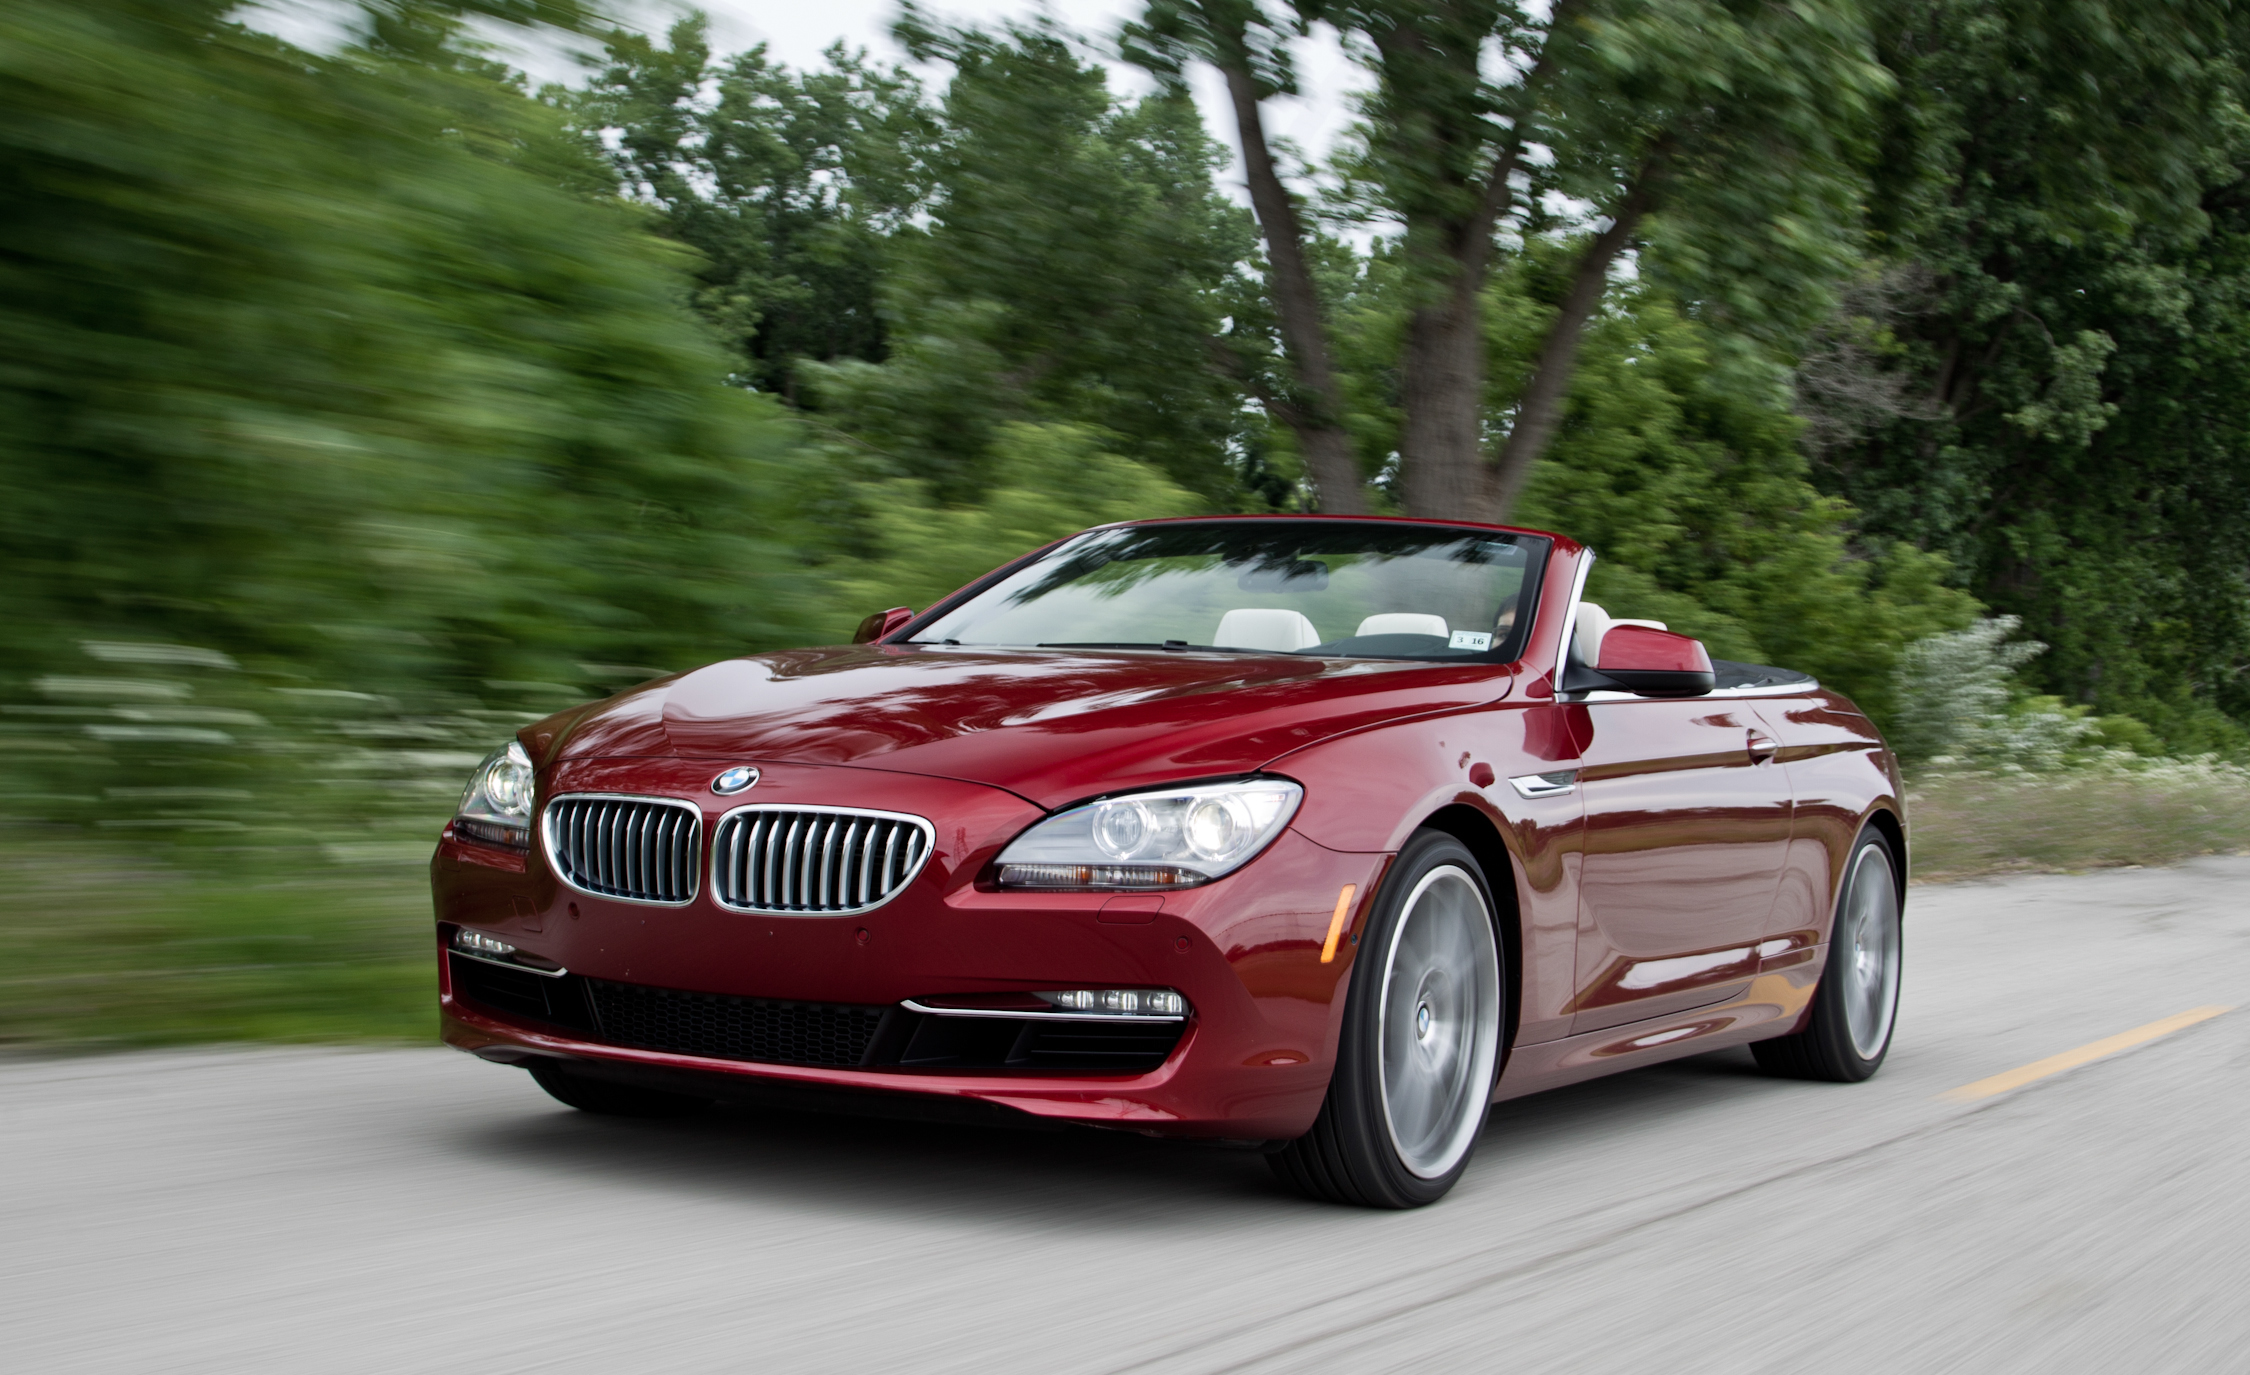 2012 BMW 650i Convertible Test Drive Front And Side View (Photo 16 of 19)